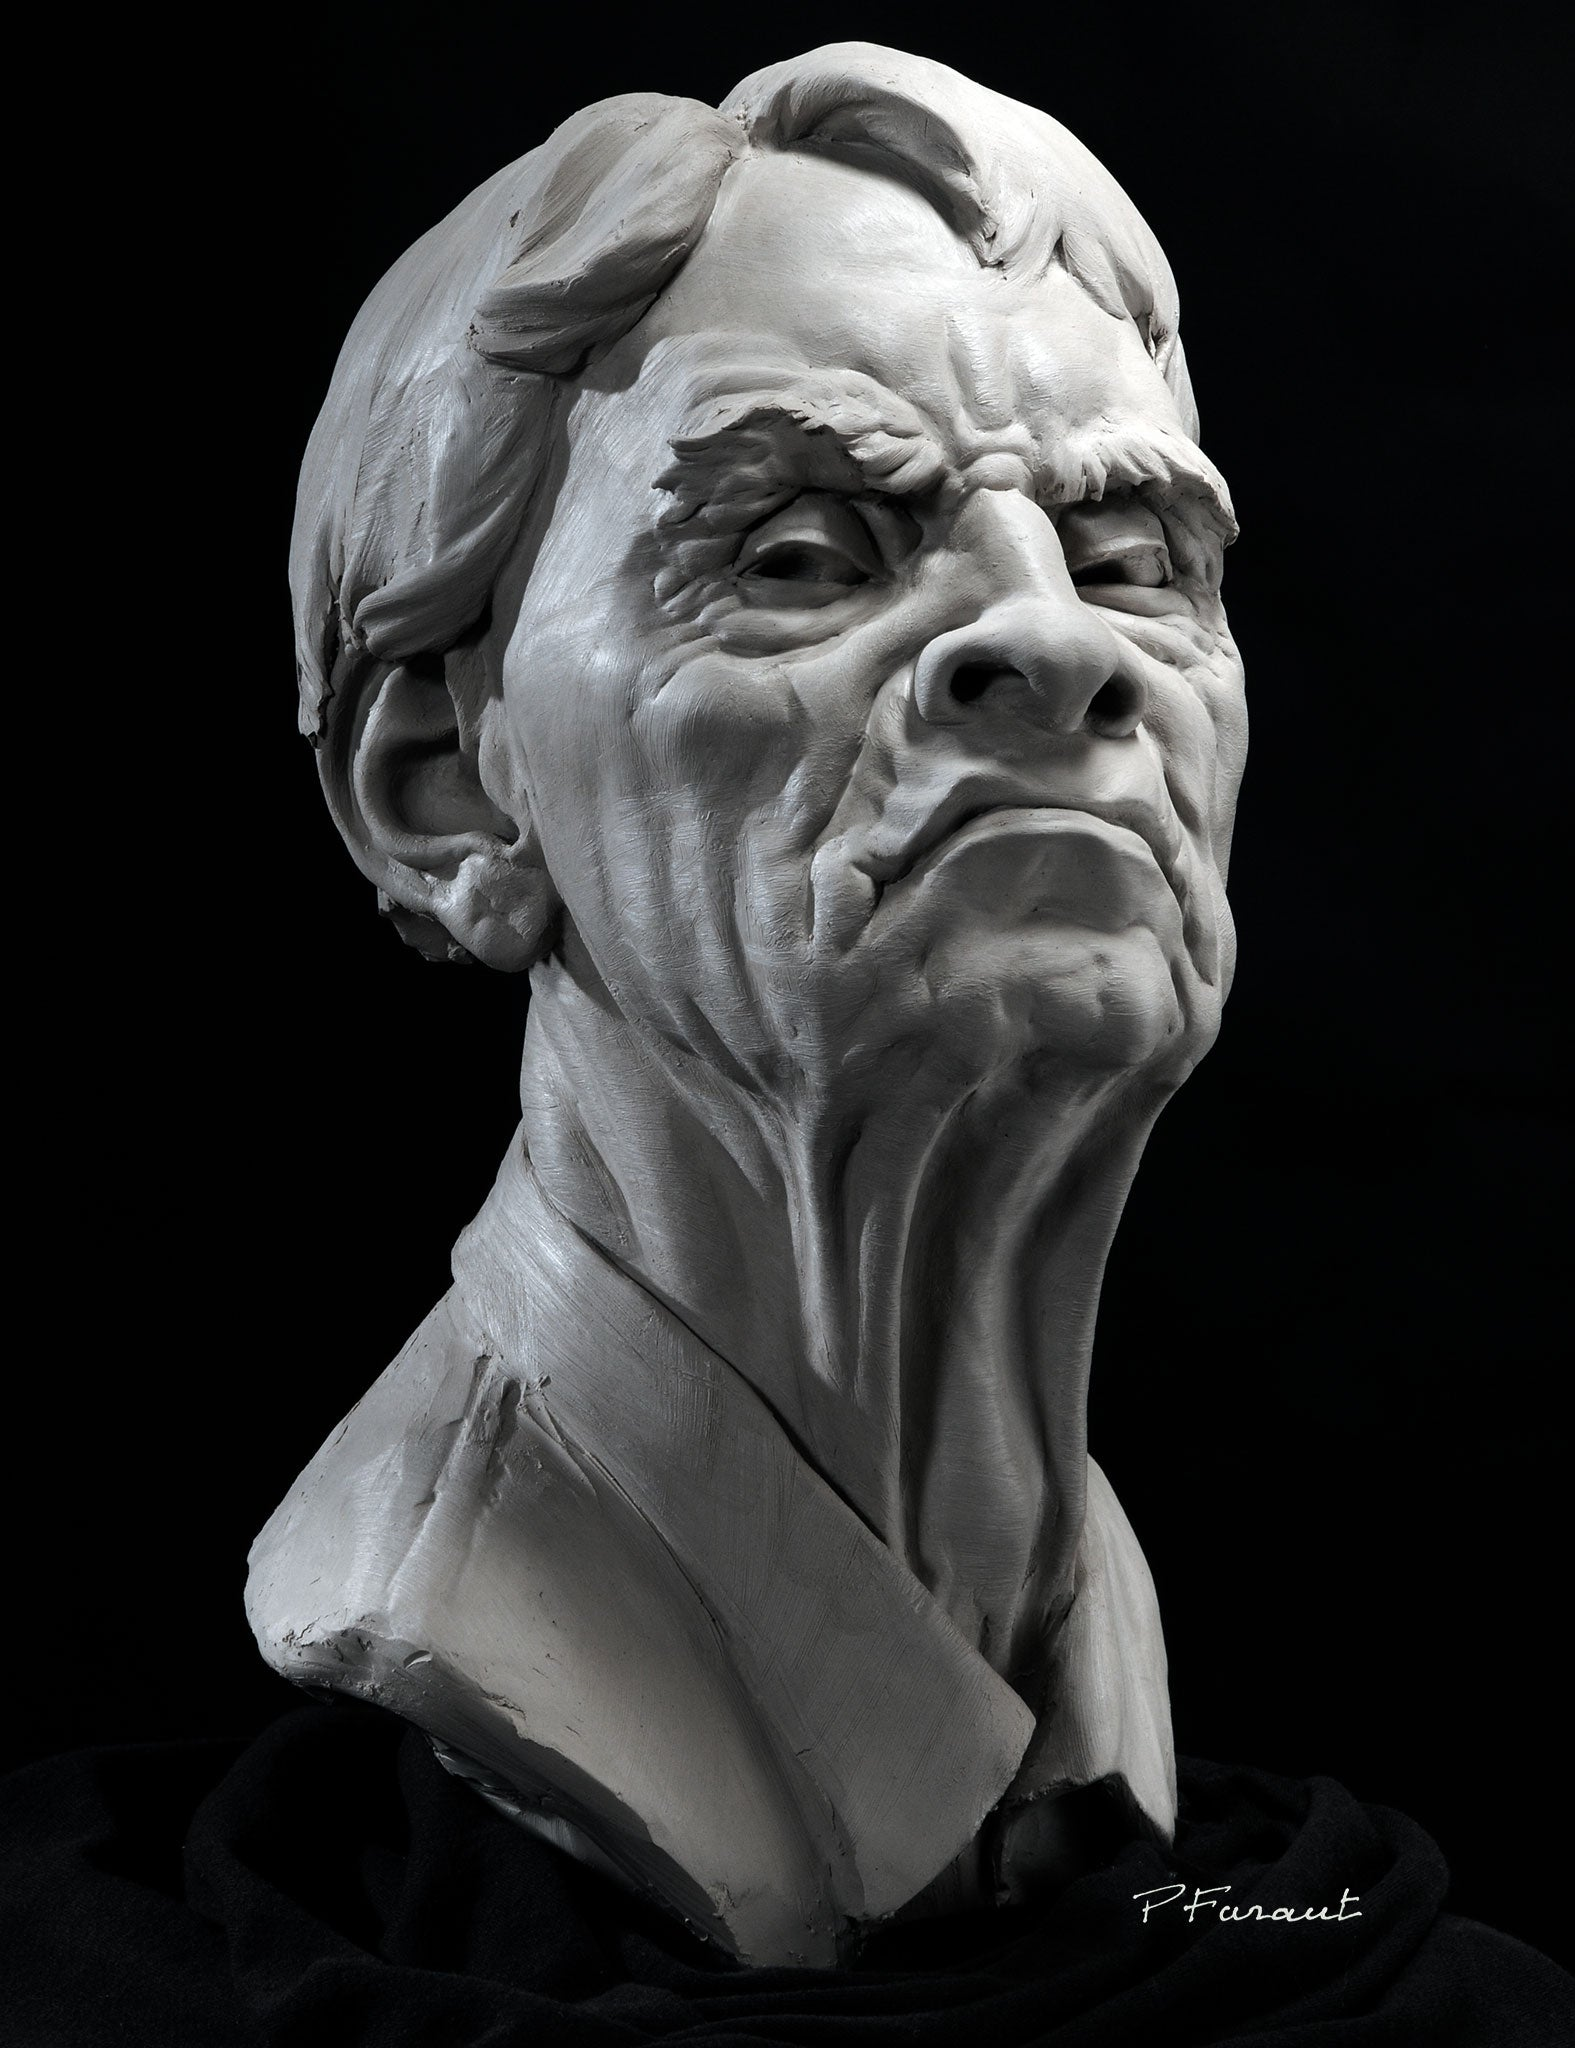 Clay portrait sculpture of an art critic with expression of disdain by Philippe Faraut